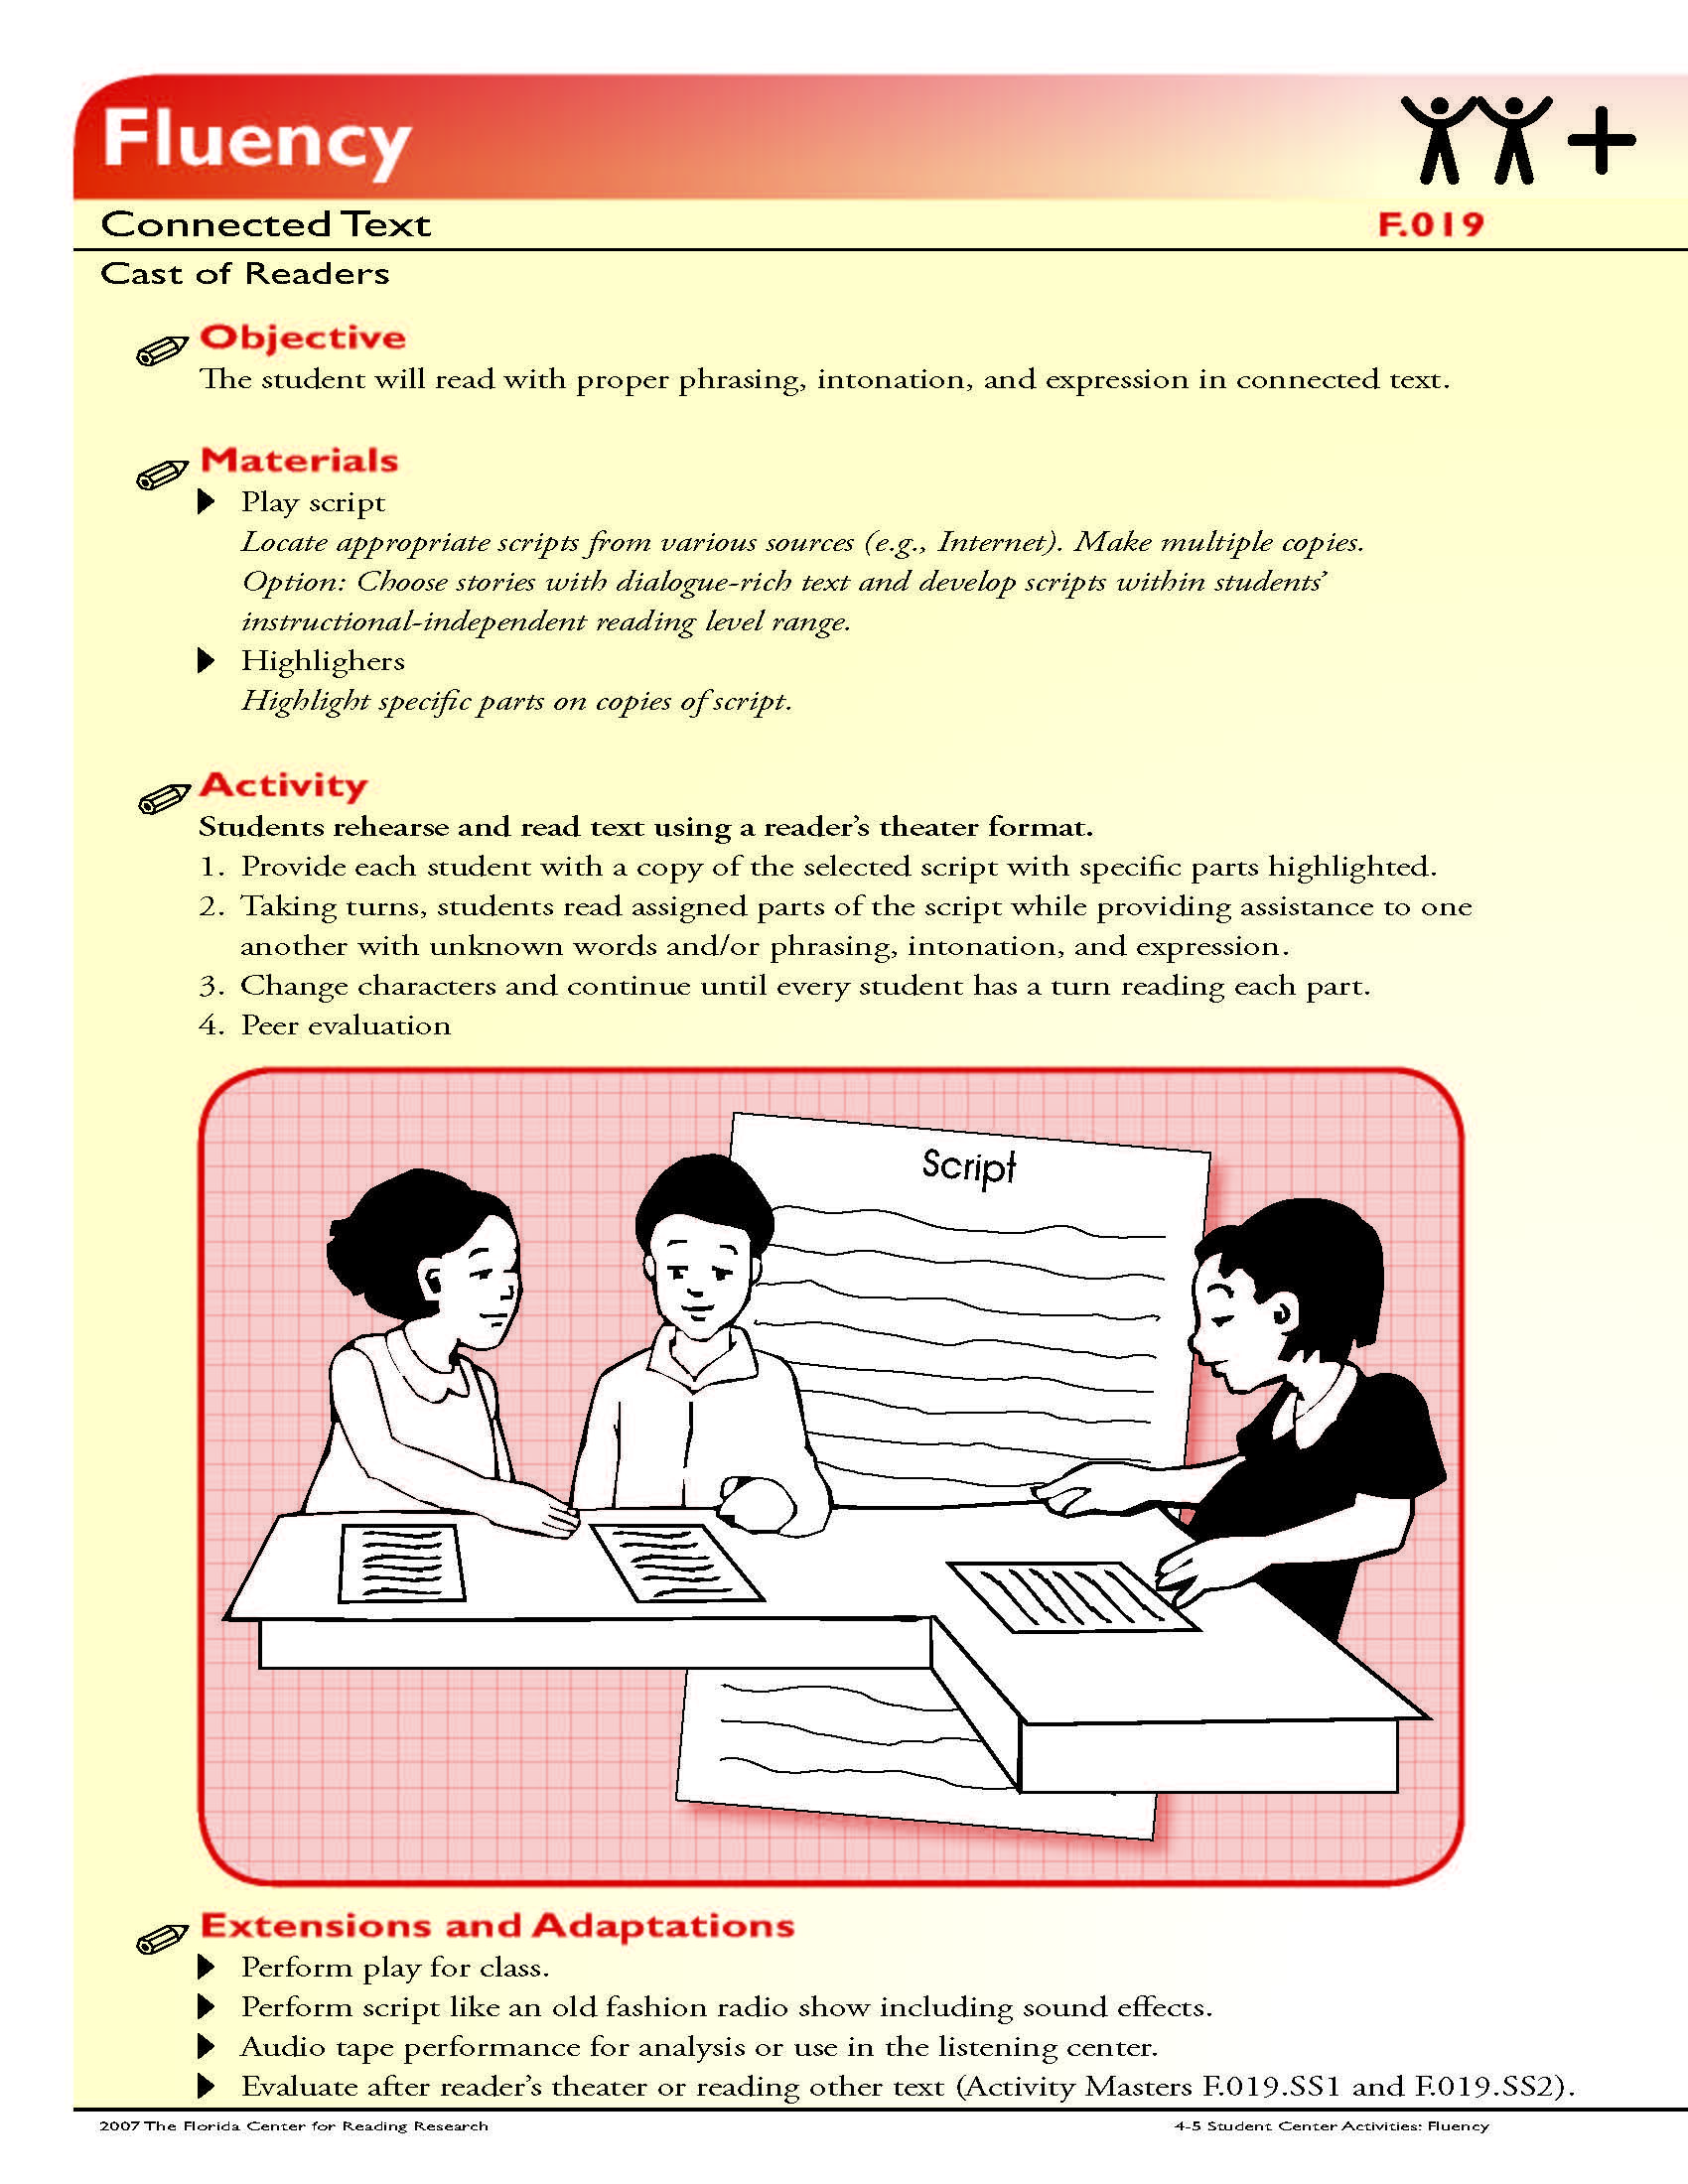 The Student Will Read With Proper Phrasing Intonation And Expression In Connected Text Reading Foundational Skills Foundational Skills Student Reading [ 2200 x 1700 Pixel ]